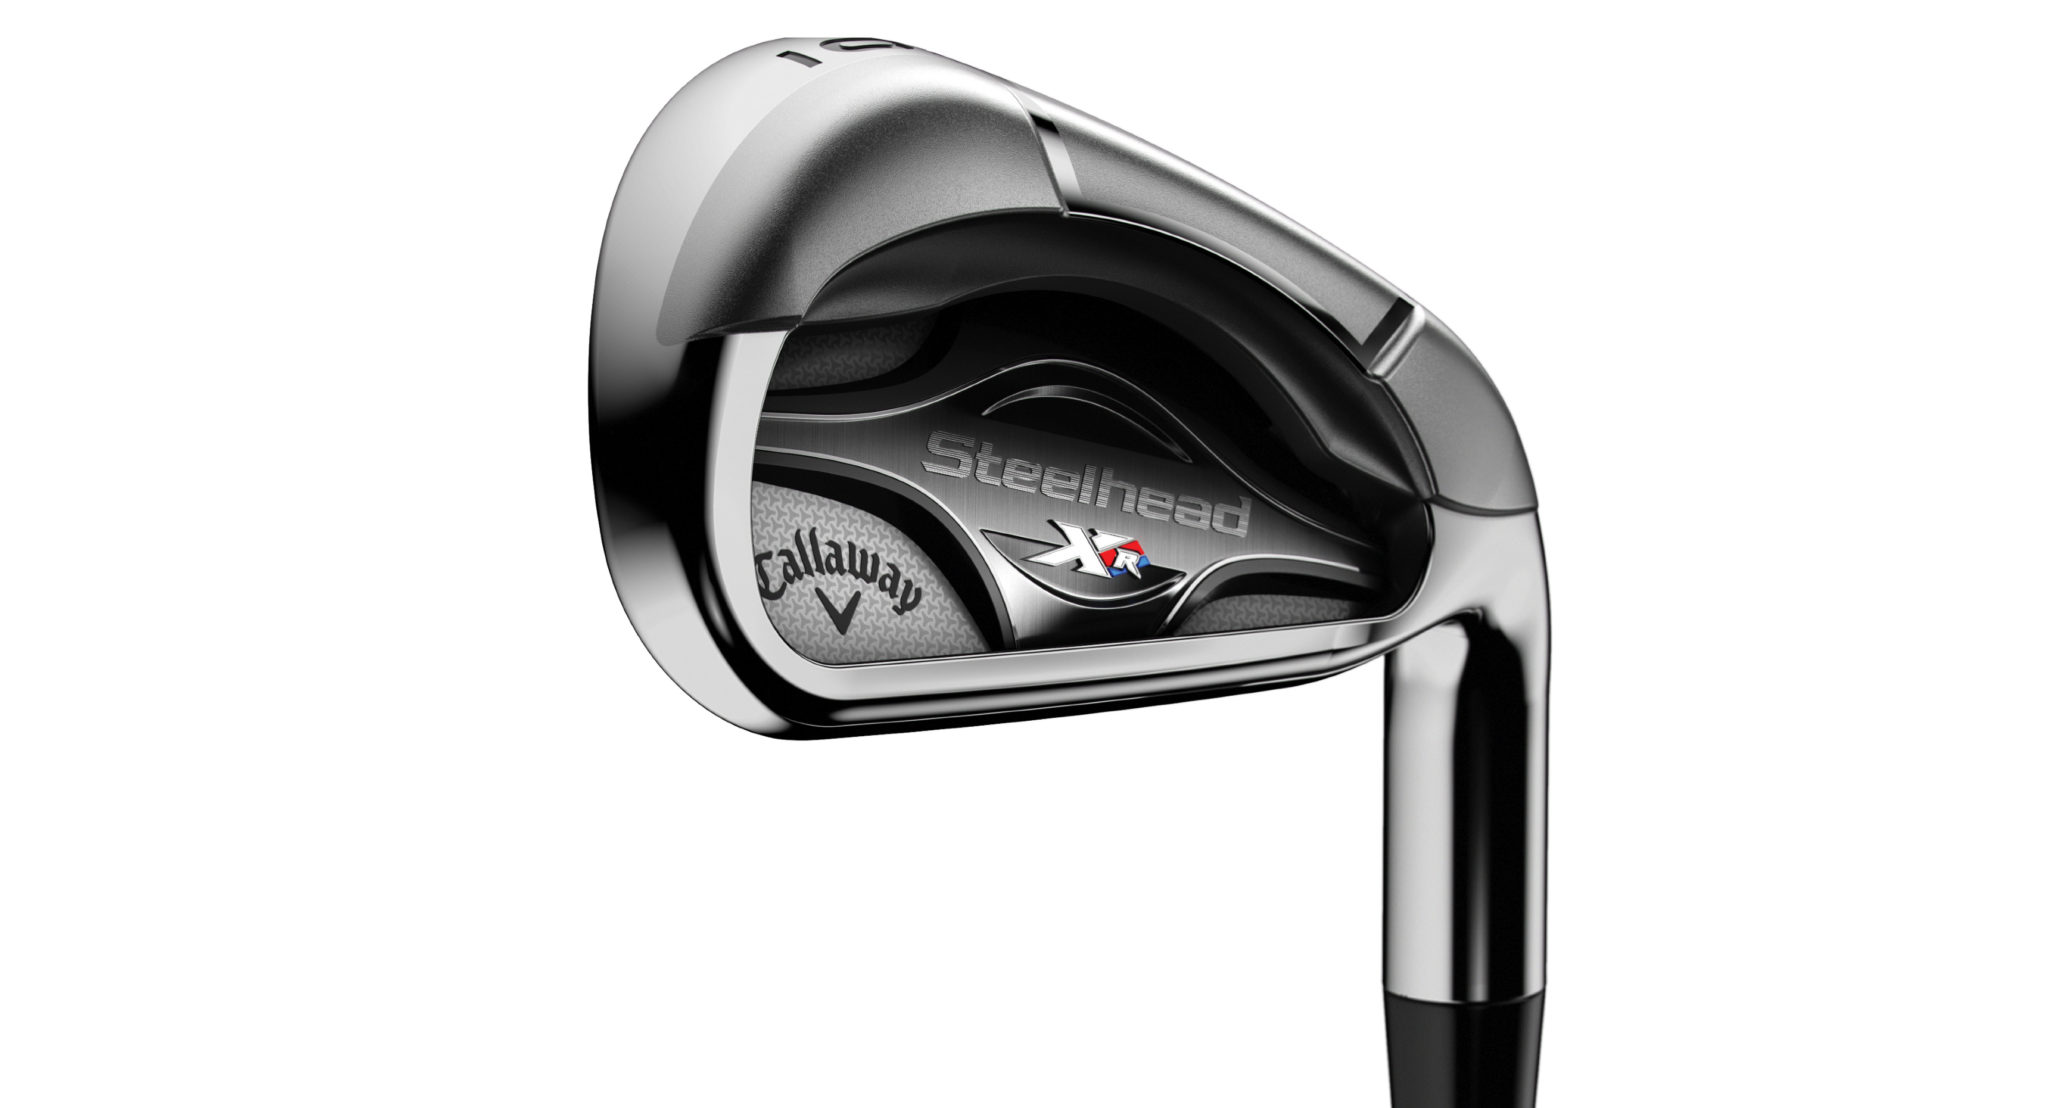 Callaway Steelhead XR Pro club head